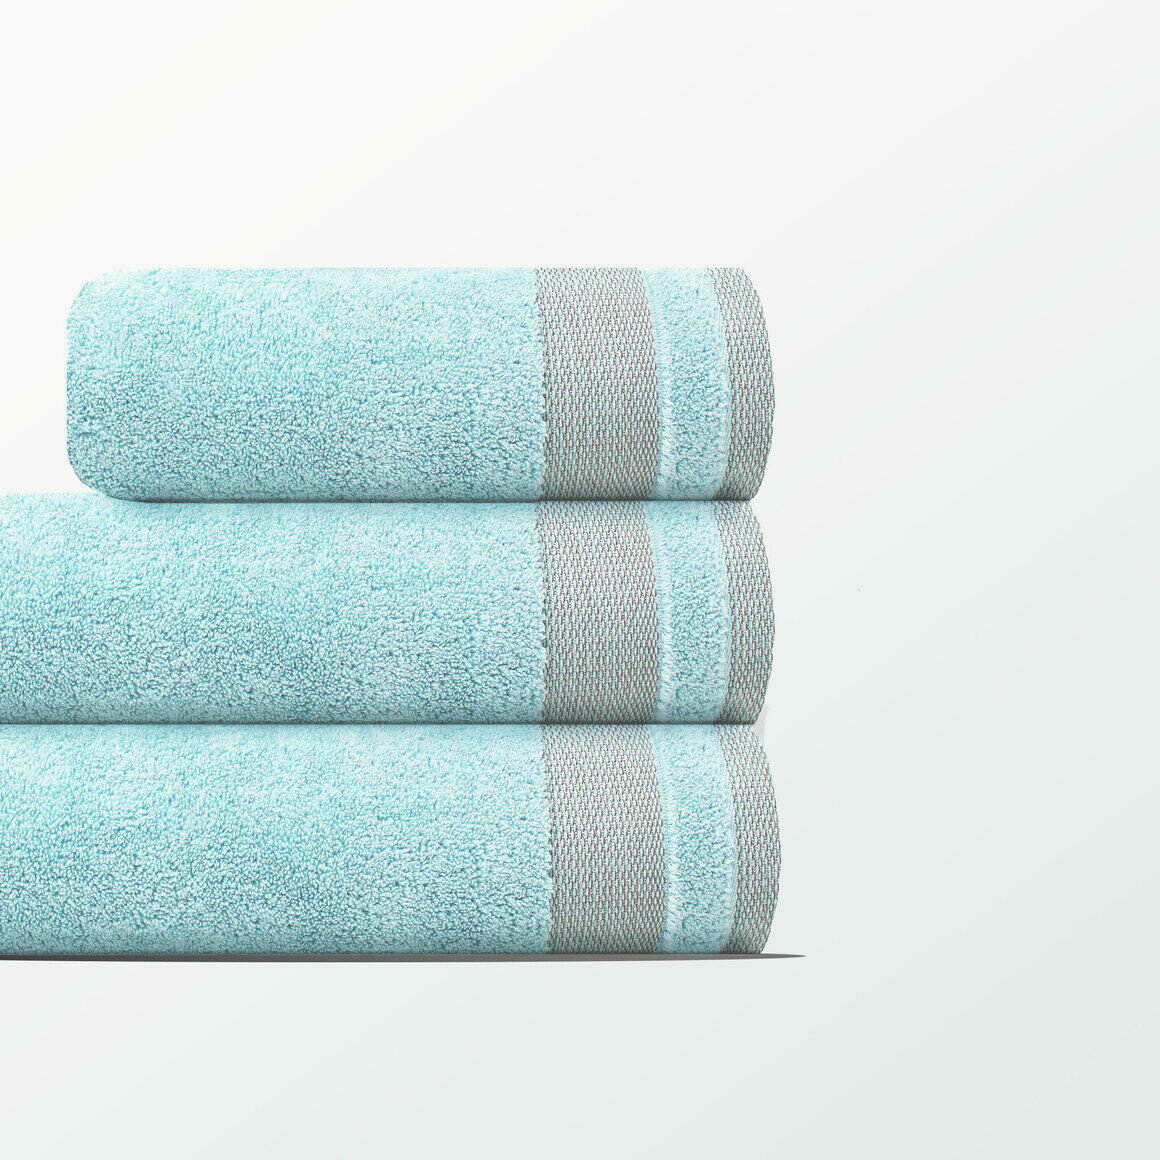 RC SURF Super Soft Towel Collection - Turquoise - Bath Sheet   Trada Marketplace